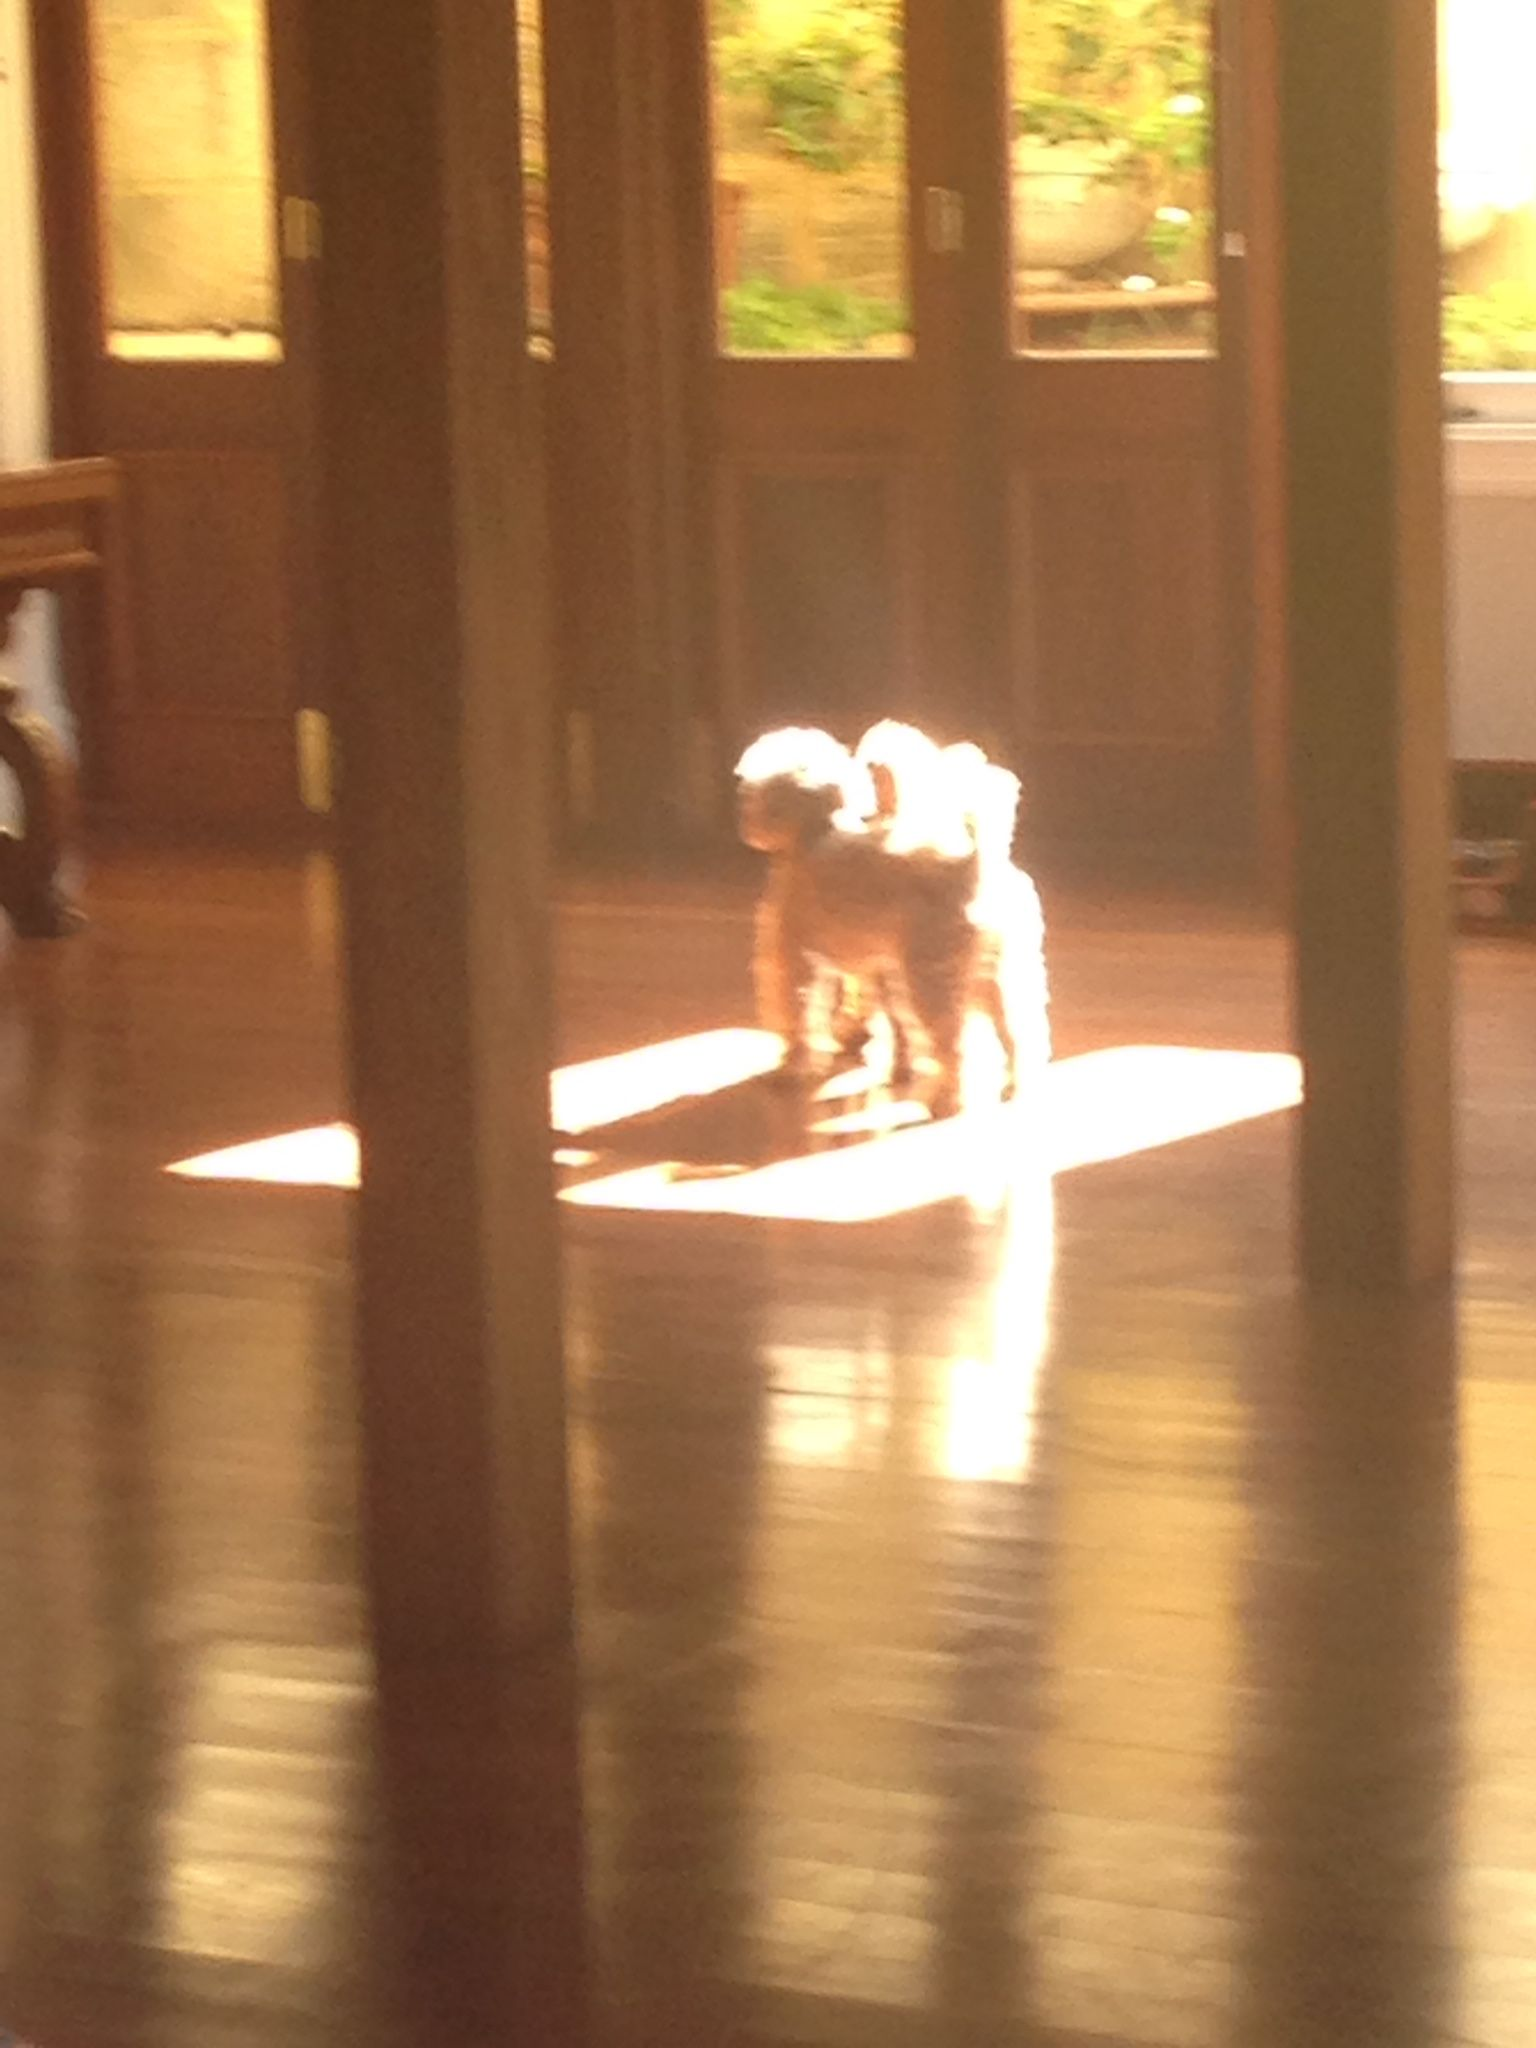 My poodles dancing in the sunlight